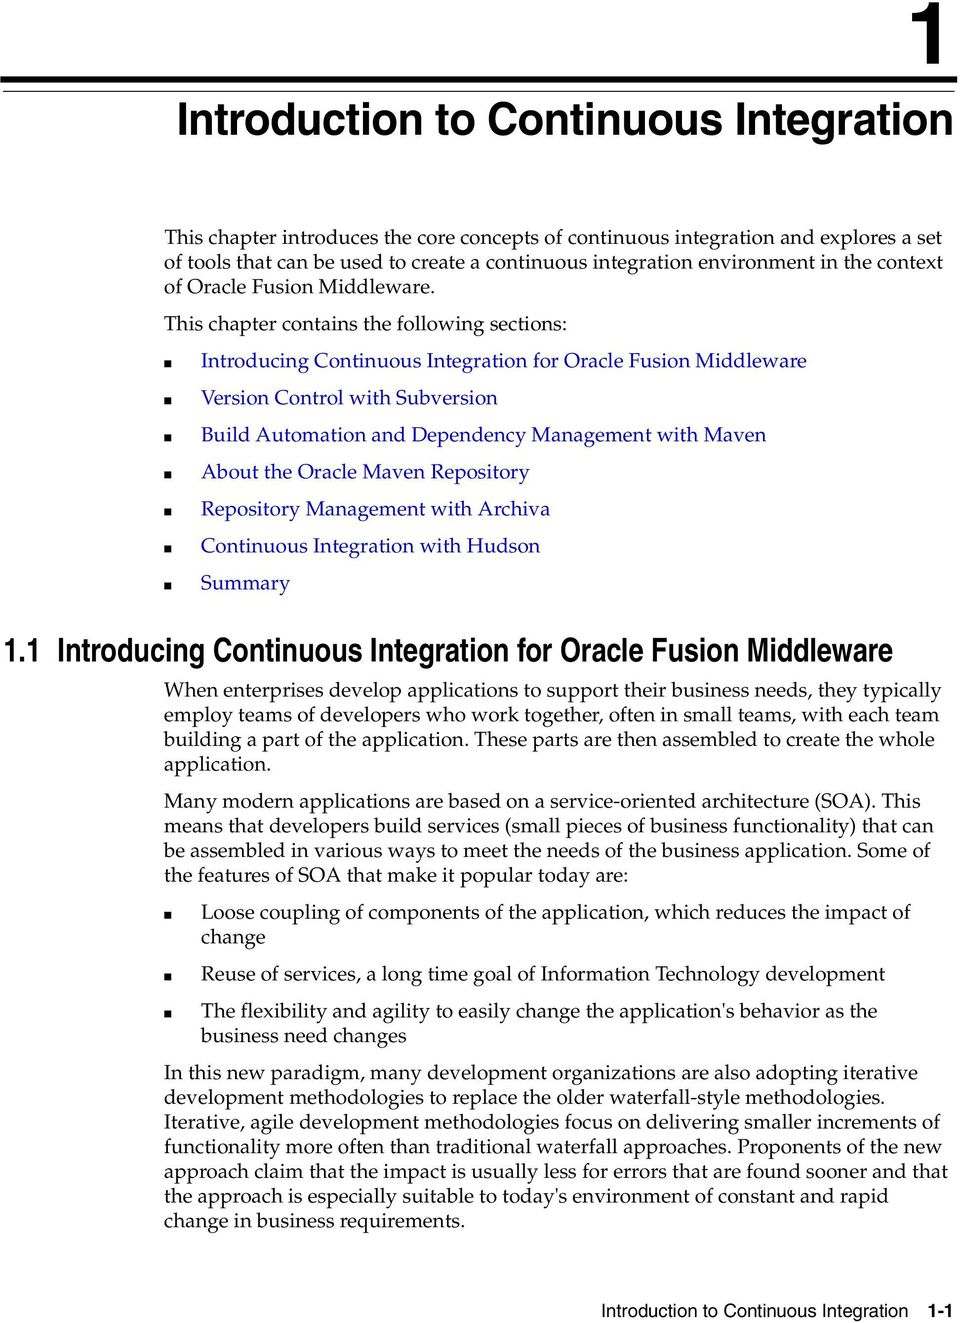 Developing Applications Using Continuous Integration 12c